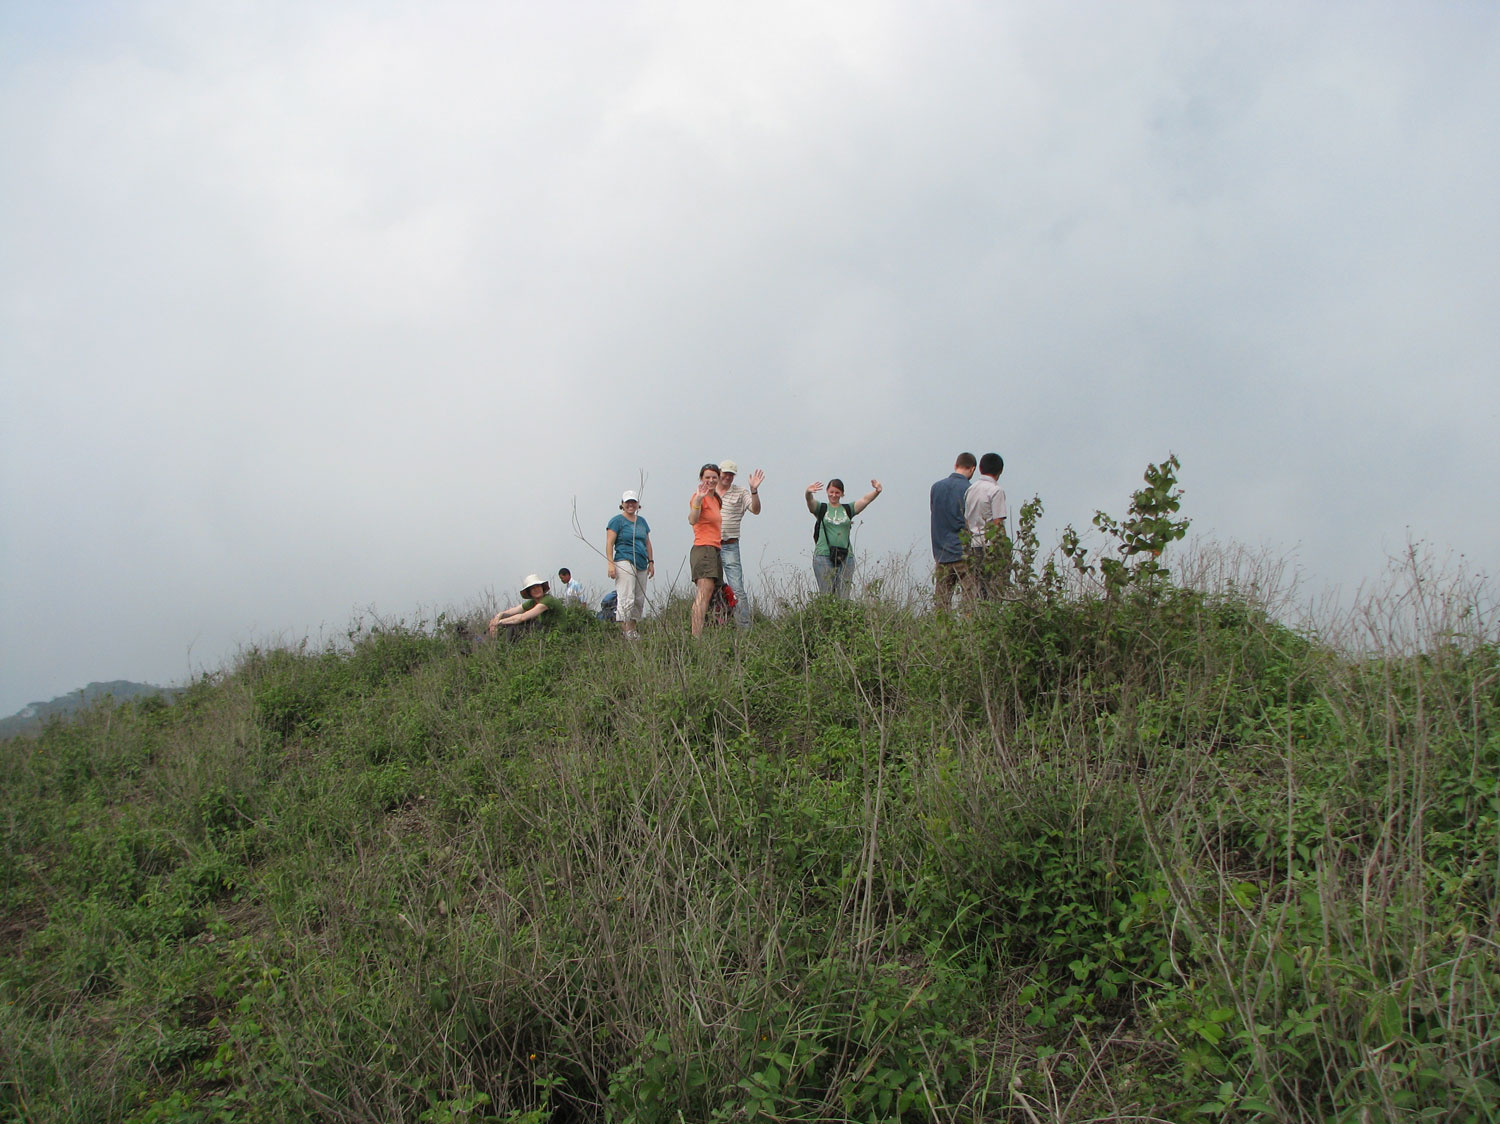 Our group reaching the summit of the El Ojochal hillside